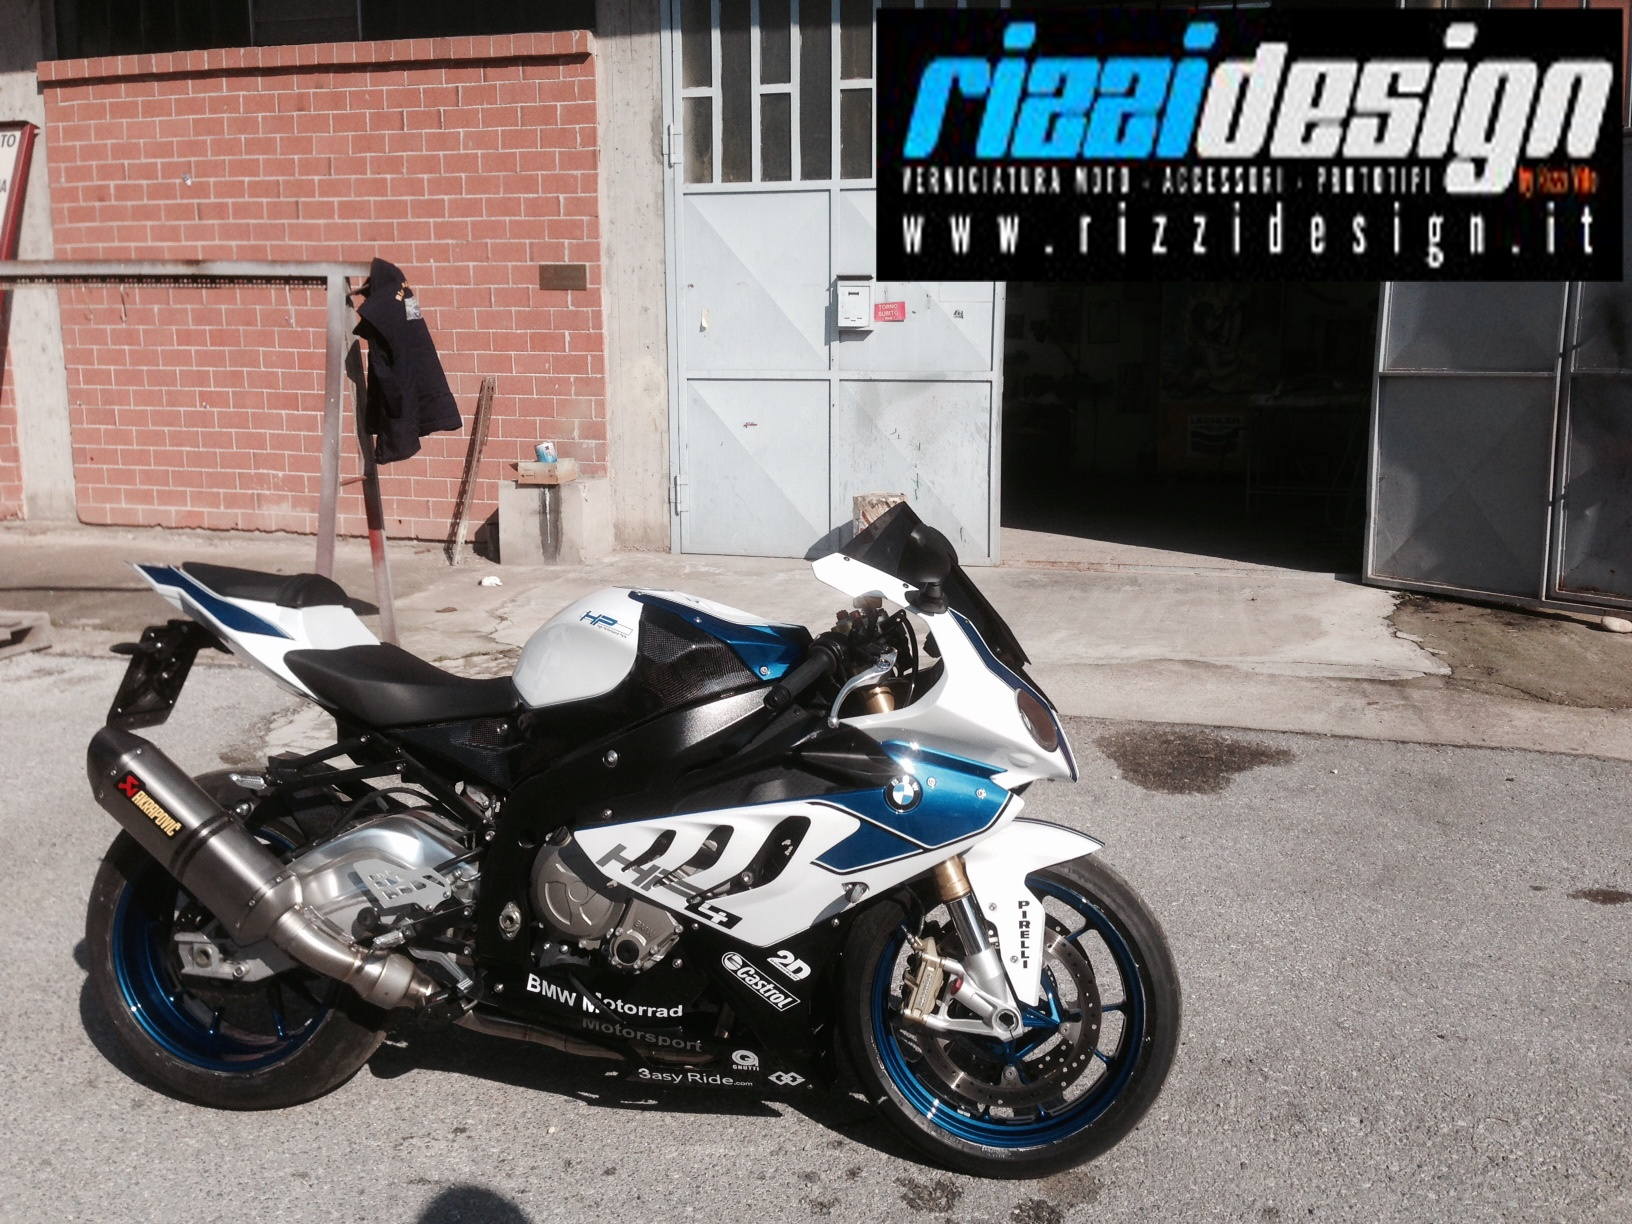 BMW S 1000RR – colorazione HP4! #RIZZIDESIGN